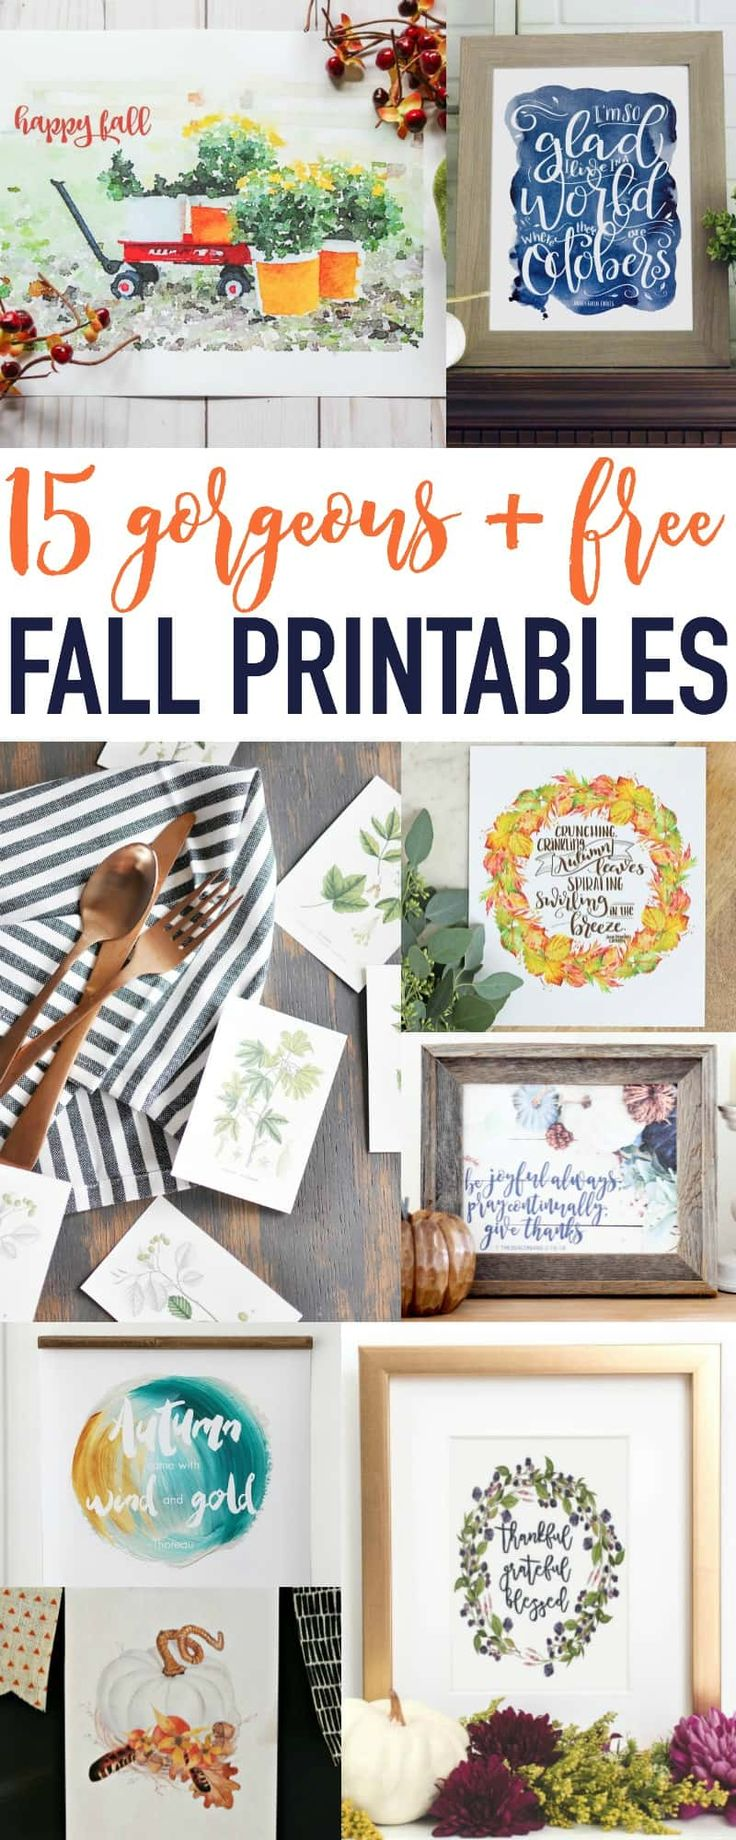 FALL PRINTABLES. Each and every single one of these printables are amazing!!!